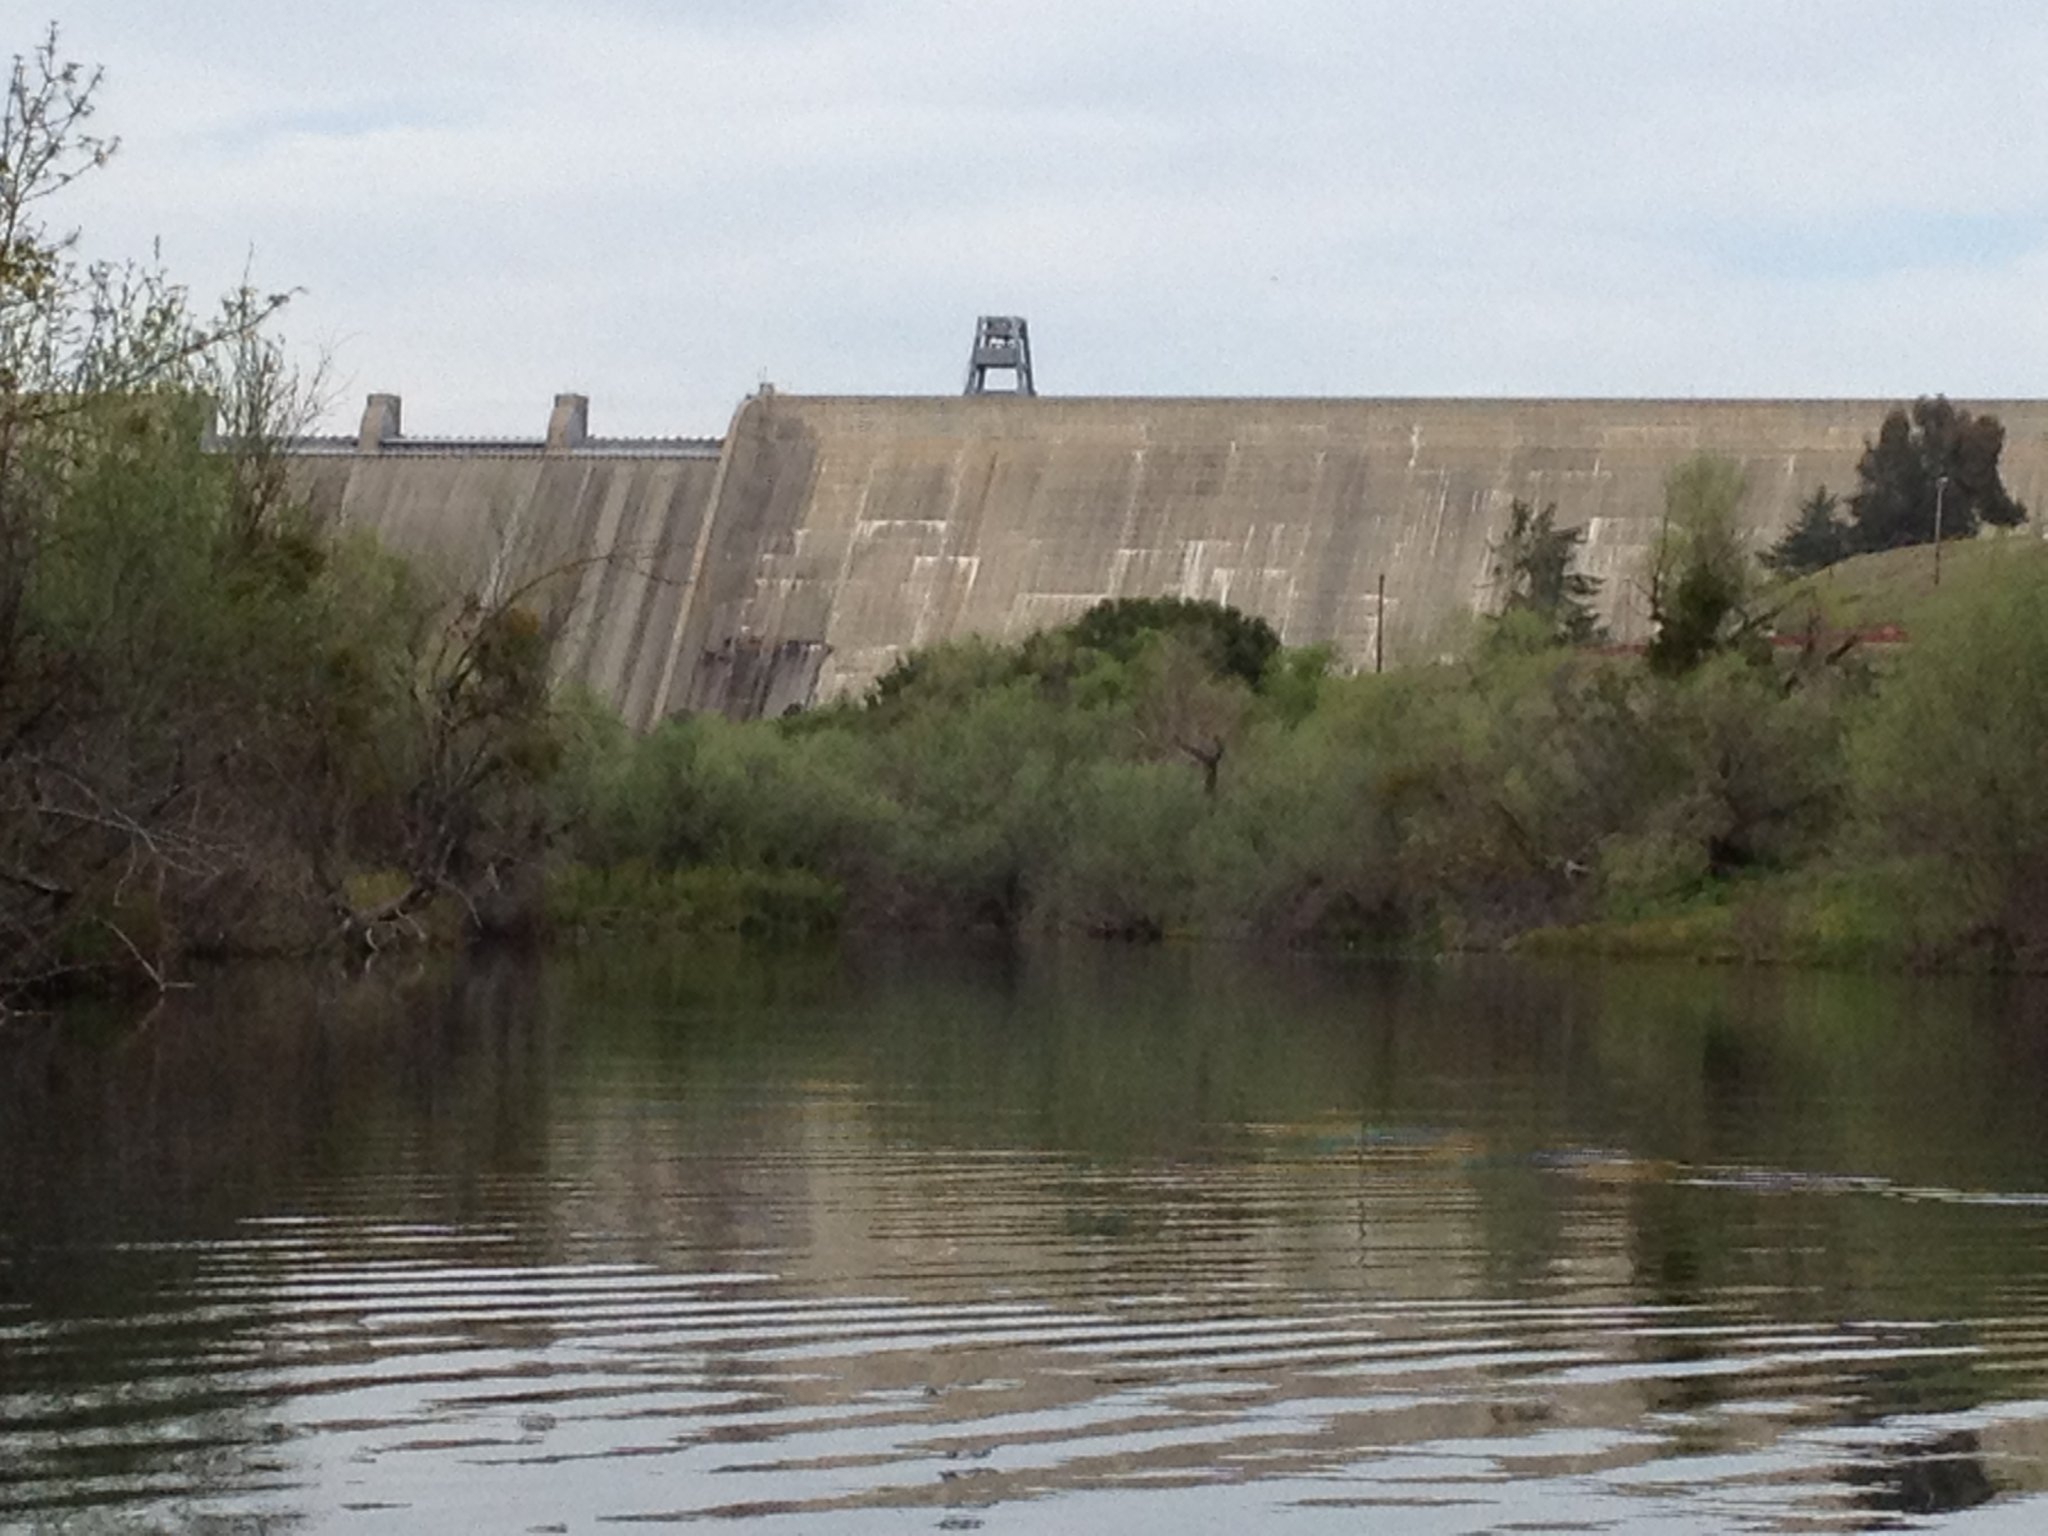 Will the San Joaquin Flow to the Sea? Part 1